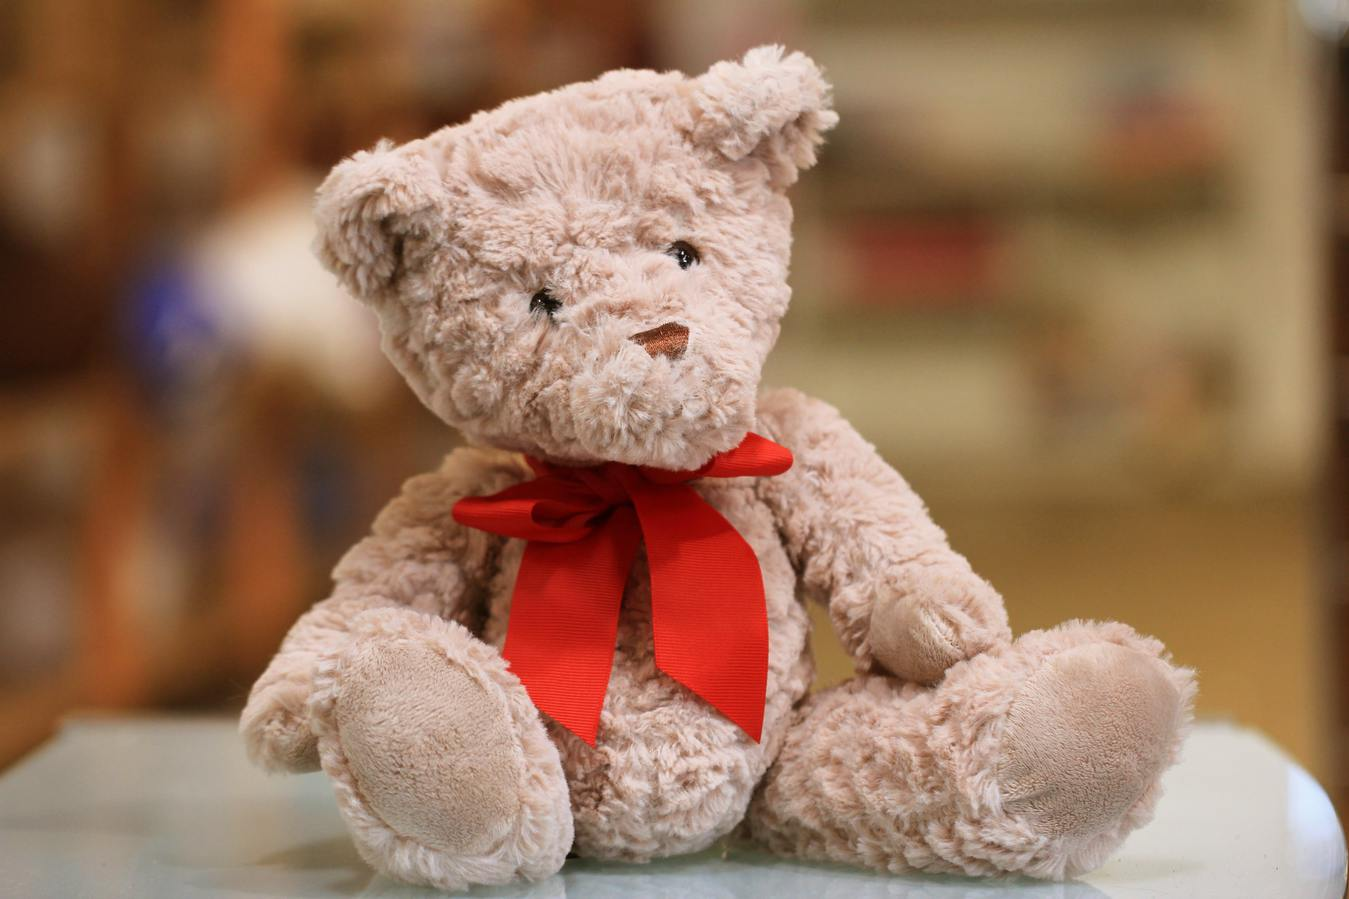 Teddy bear with a red bow sitting